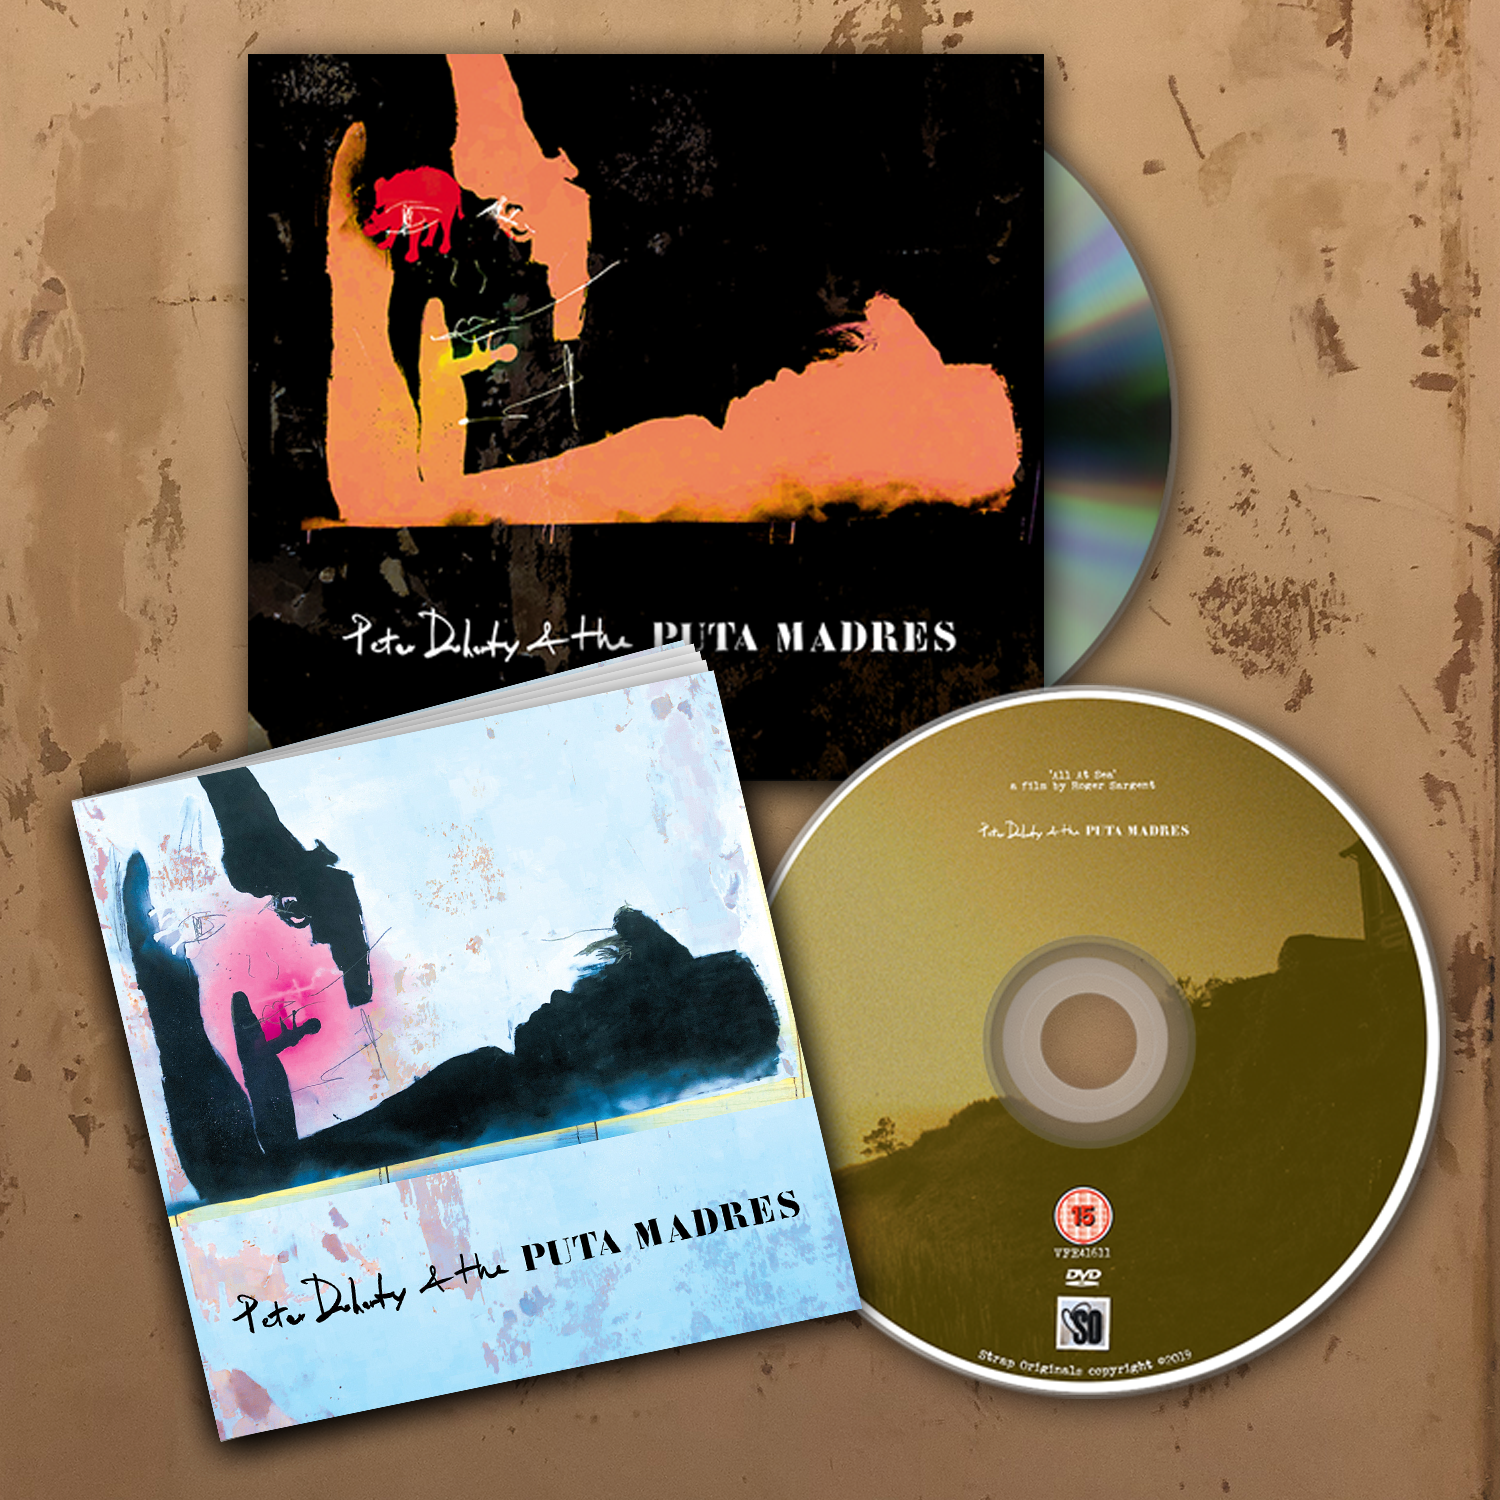 Peter Doherty and The Puta Madres - Deluxe CD - Pete Eudaimonism